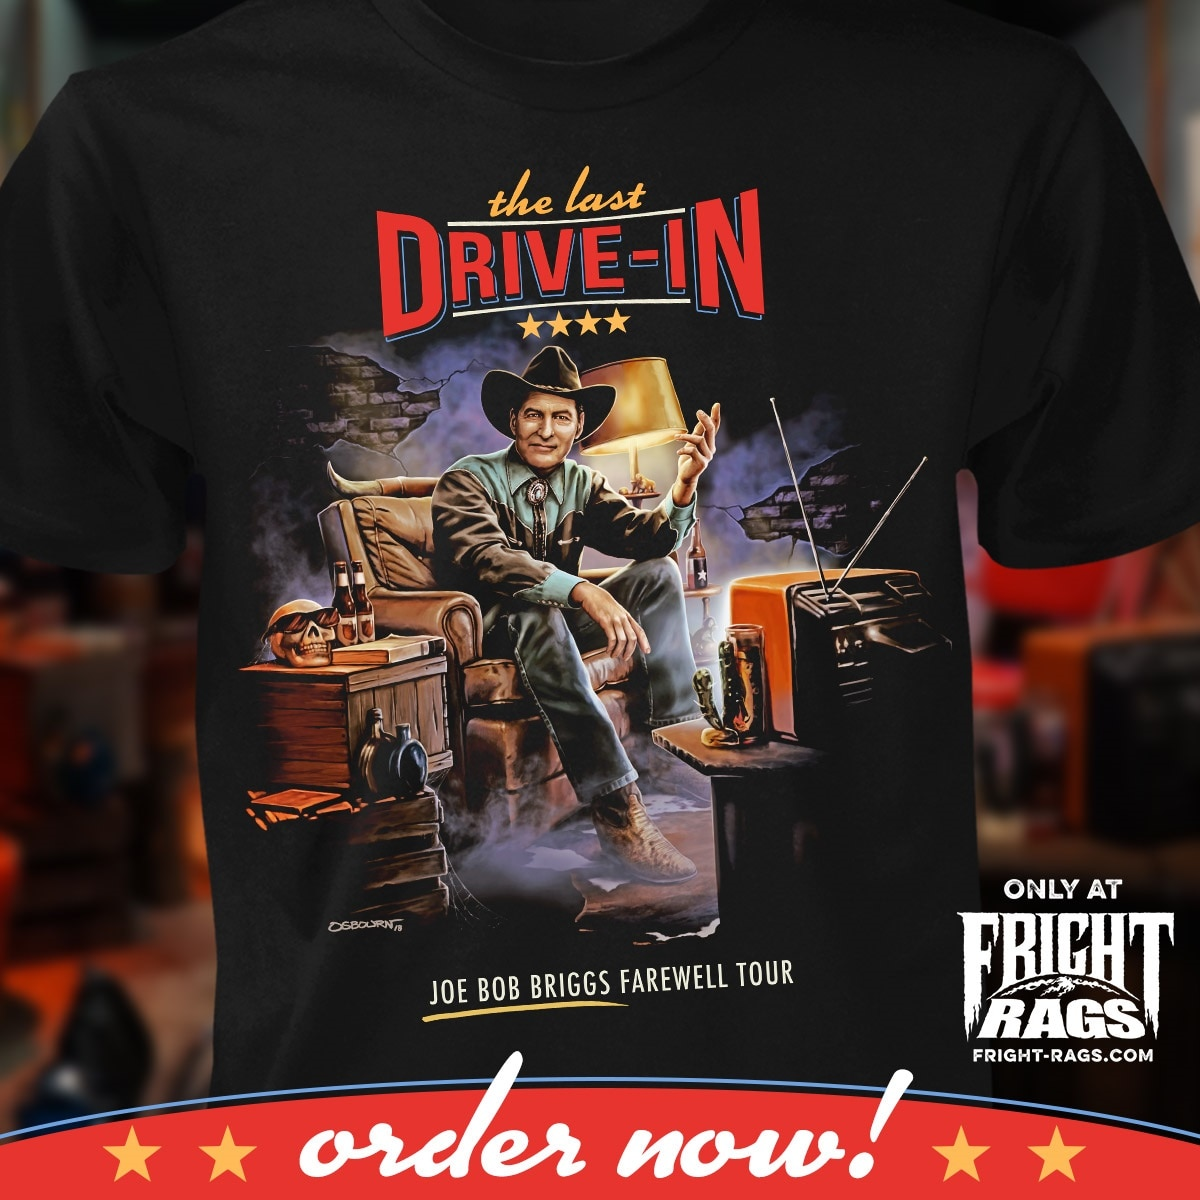 2515bef5f04 Fright-Rags  latest apparel comes from two bona fide classics that  transcend the genre – An American Werewolf in London and The Texas Chainsaw  Massacre ...